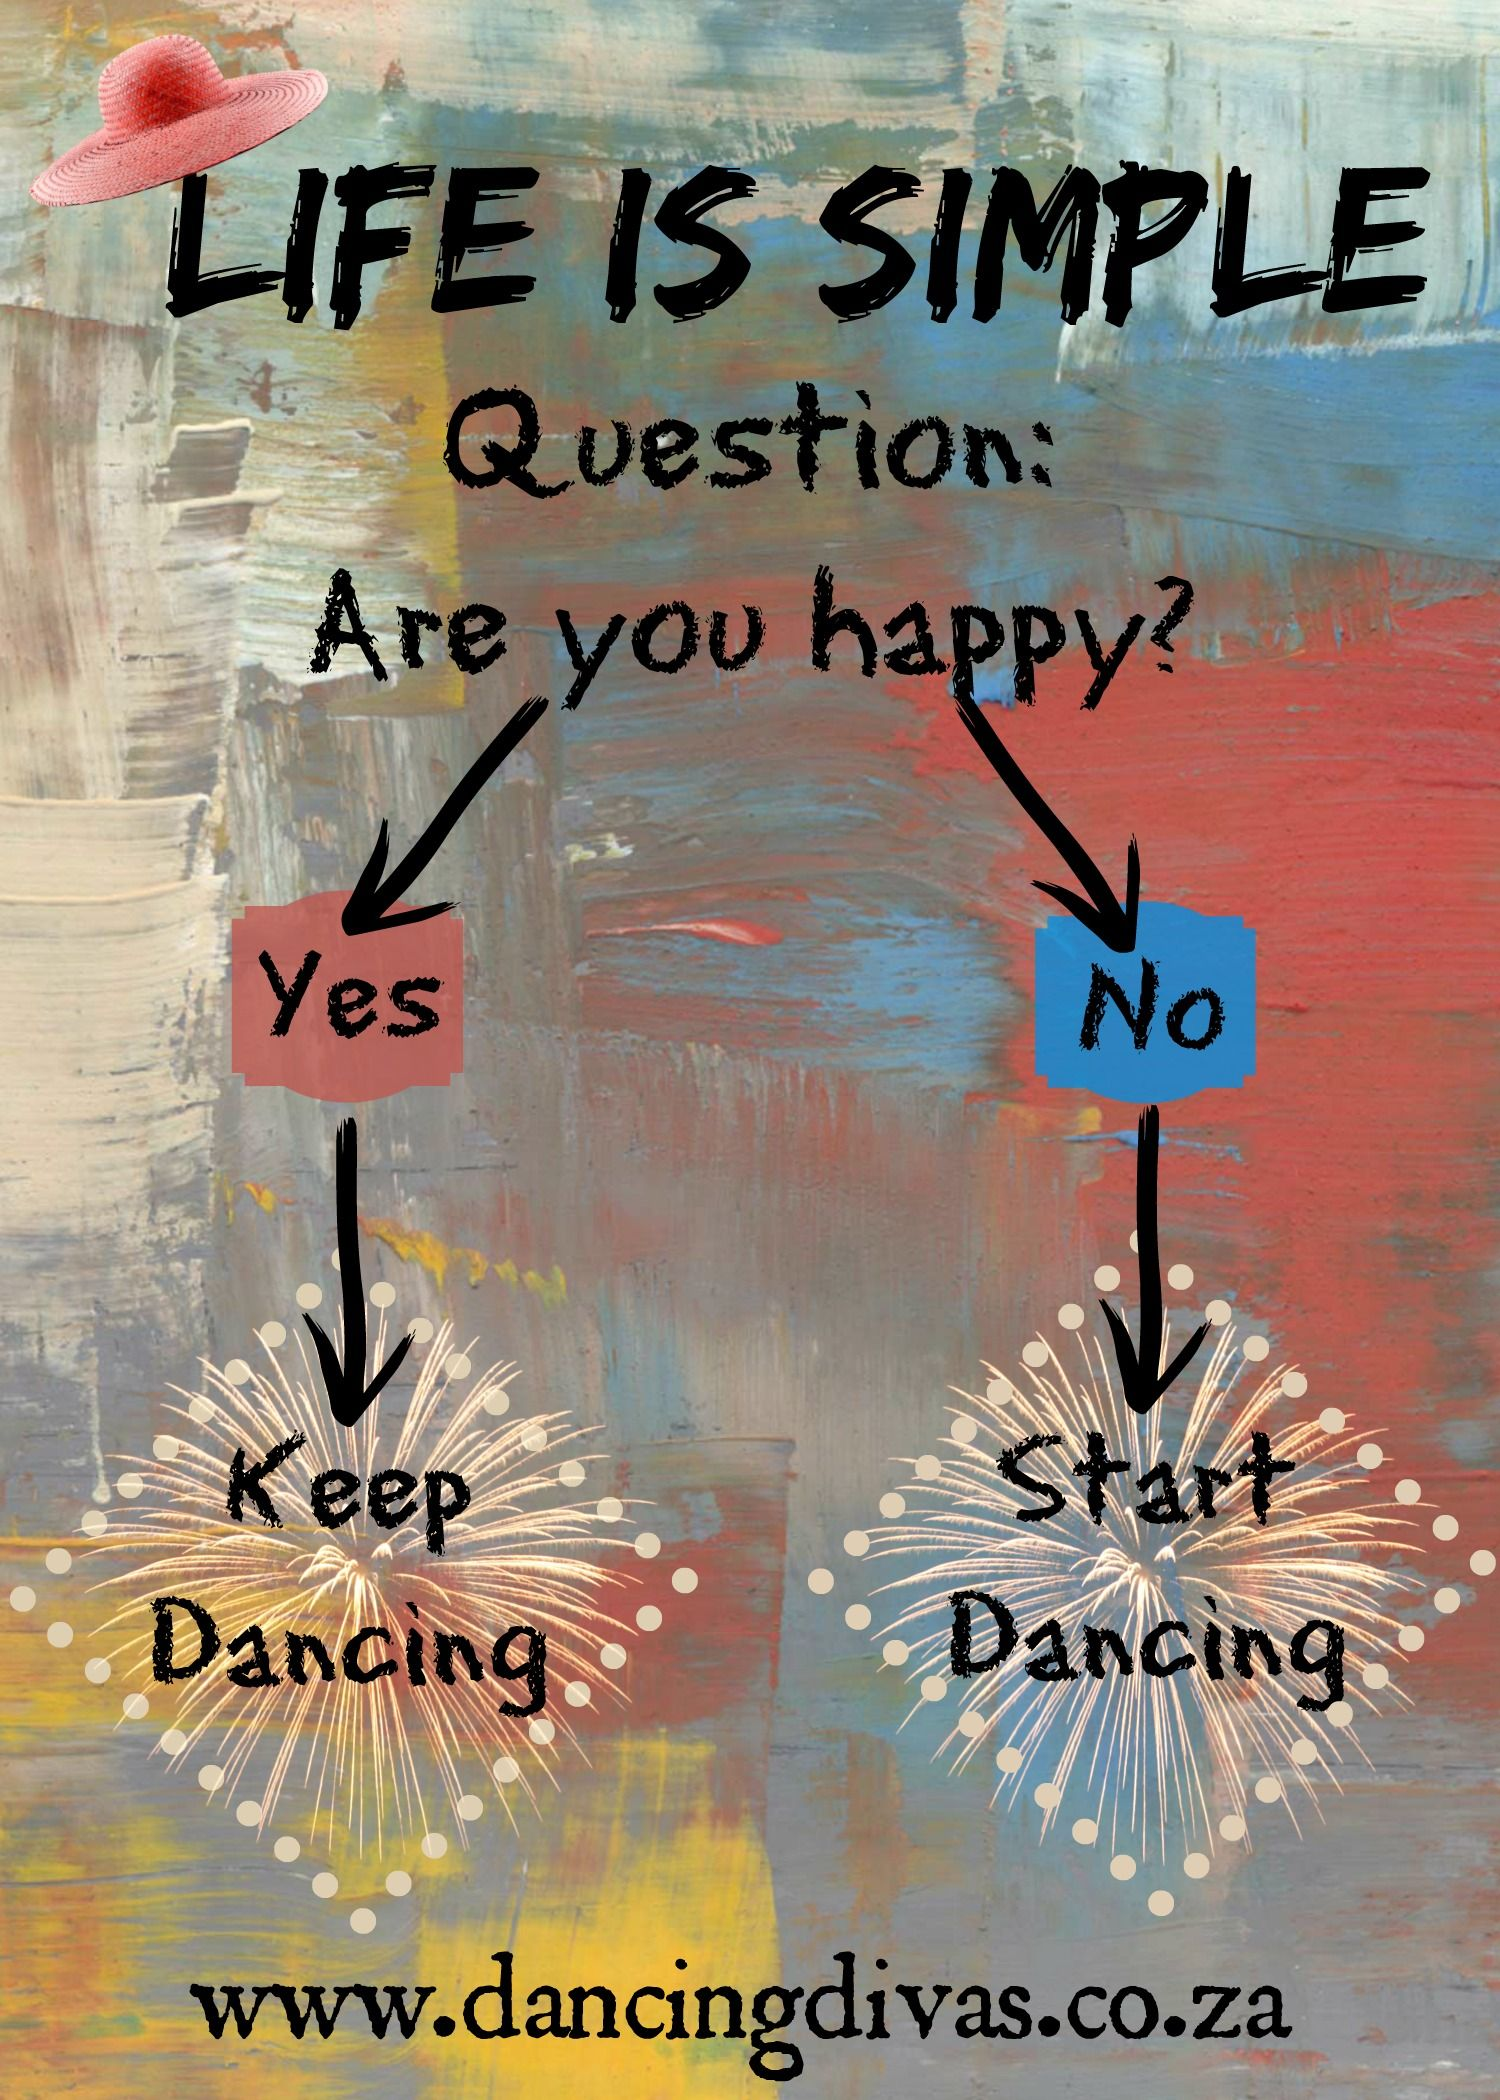 Life Is Simple Are You Happy Yes Keep Dancing No Start Dancing Dance Quote Www Dancingdivas Co Za Dancing Divas South Are You Happy Dance Quotes Dance